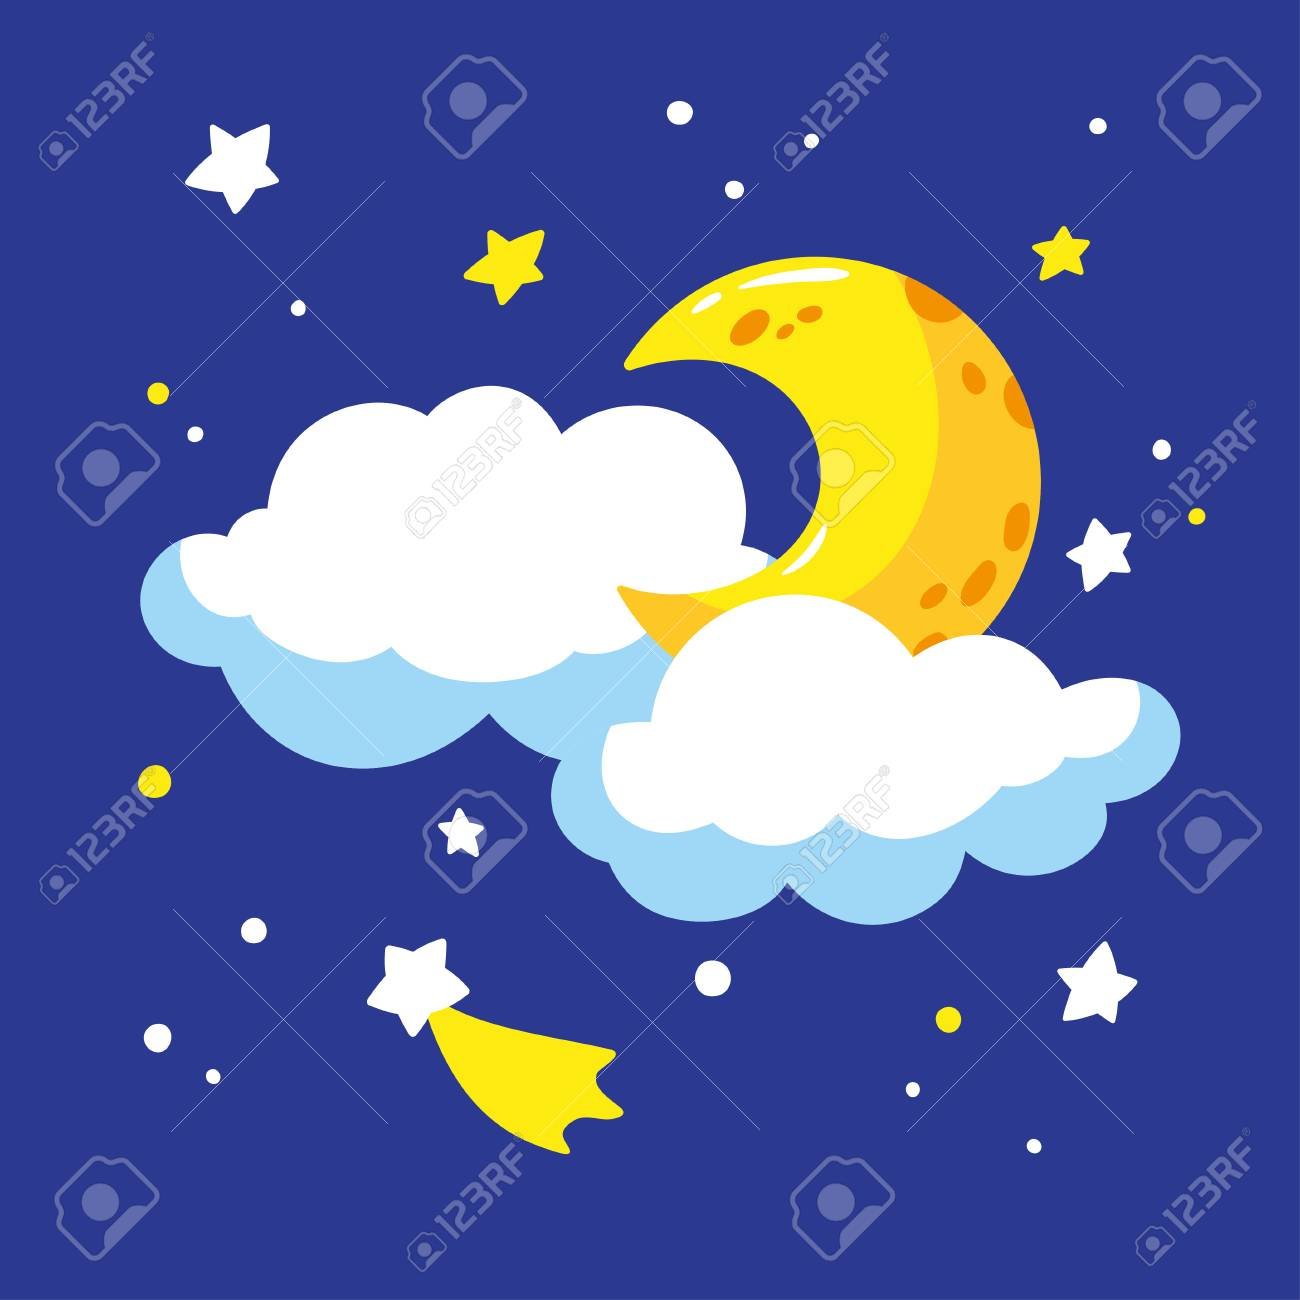 cartoon crescent and clouds in the night sky vector illustration rh 123rf com night sky vector wallpaper free night sky vector illustration